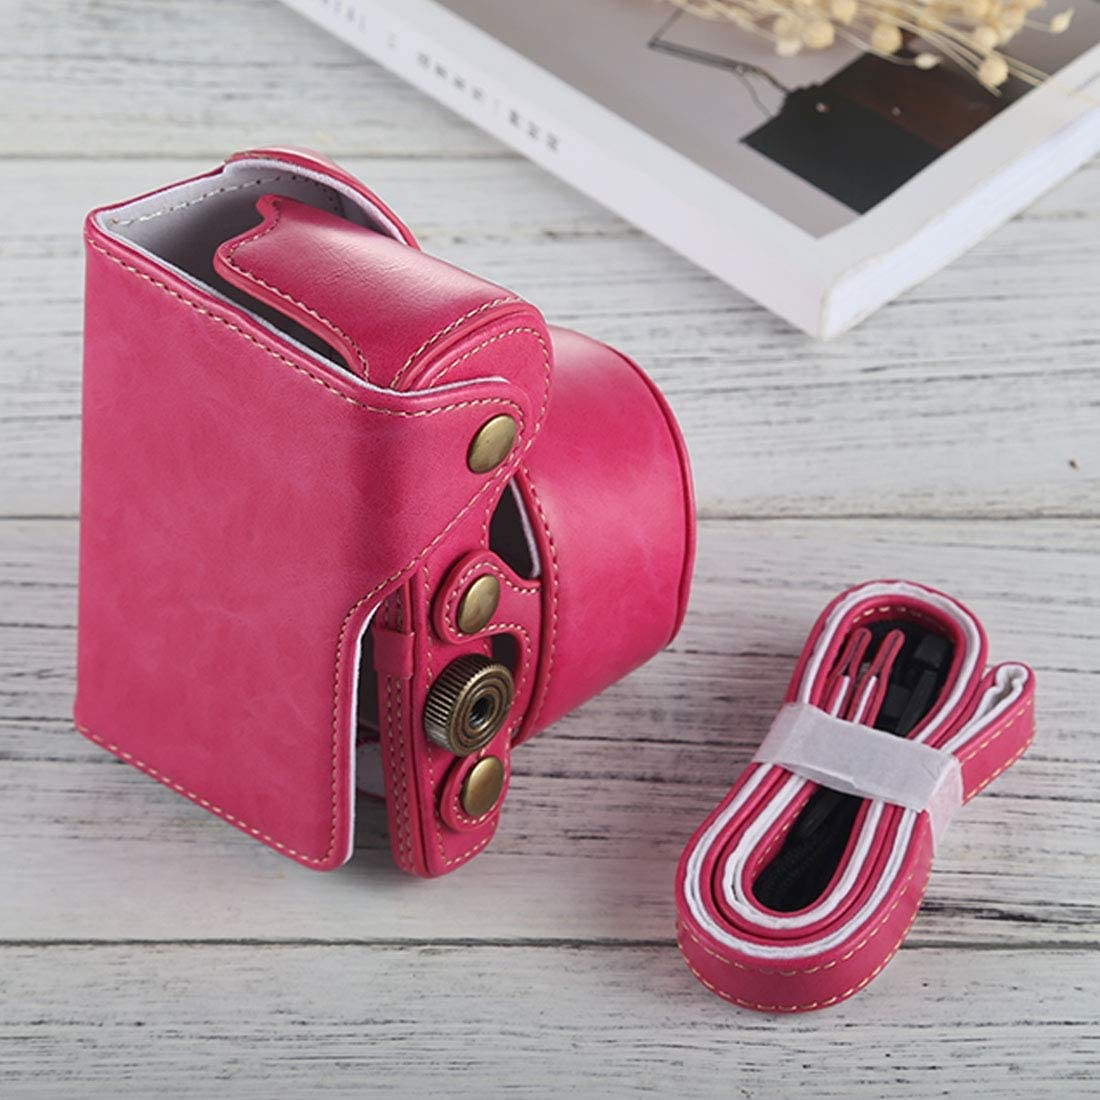 Color : Magenta Black Full Body Camera PU Leather Case Bag with Strap for Sony A6000 Camera Bags Cases